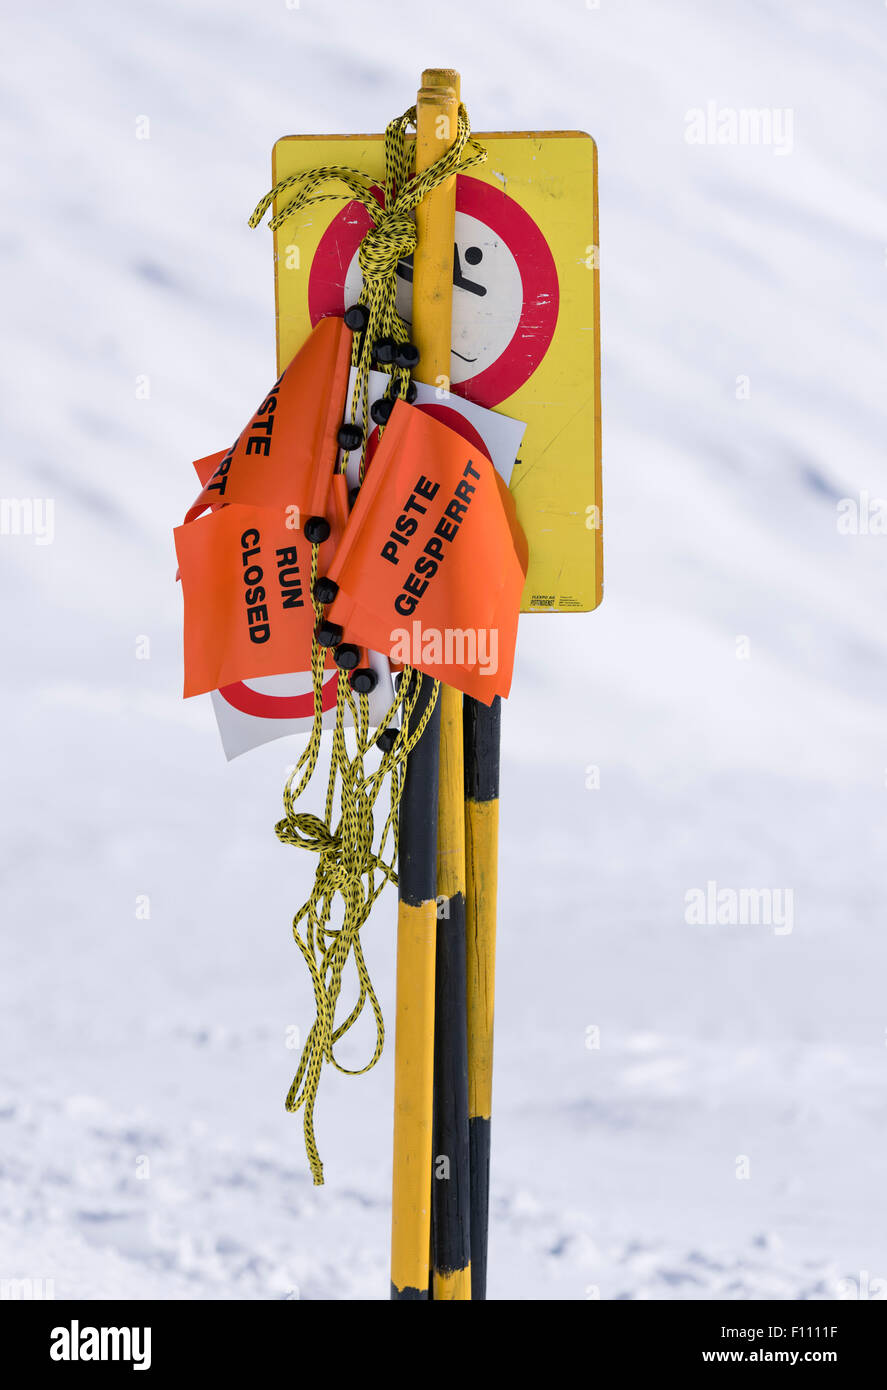 'Ski run closed' sign and barrier tape on a ski piste in the Swiss alps (Blatten/Belalp, canton Valais). - Stock Image